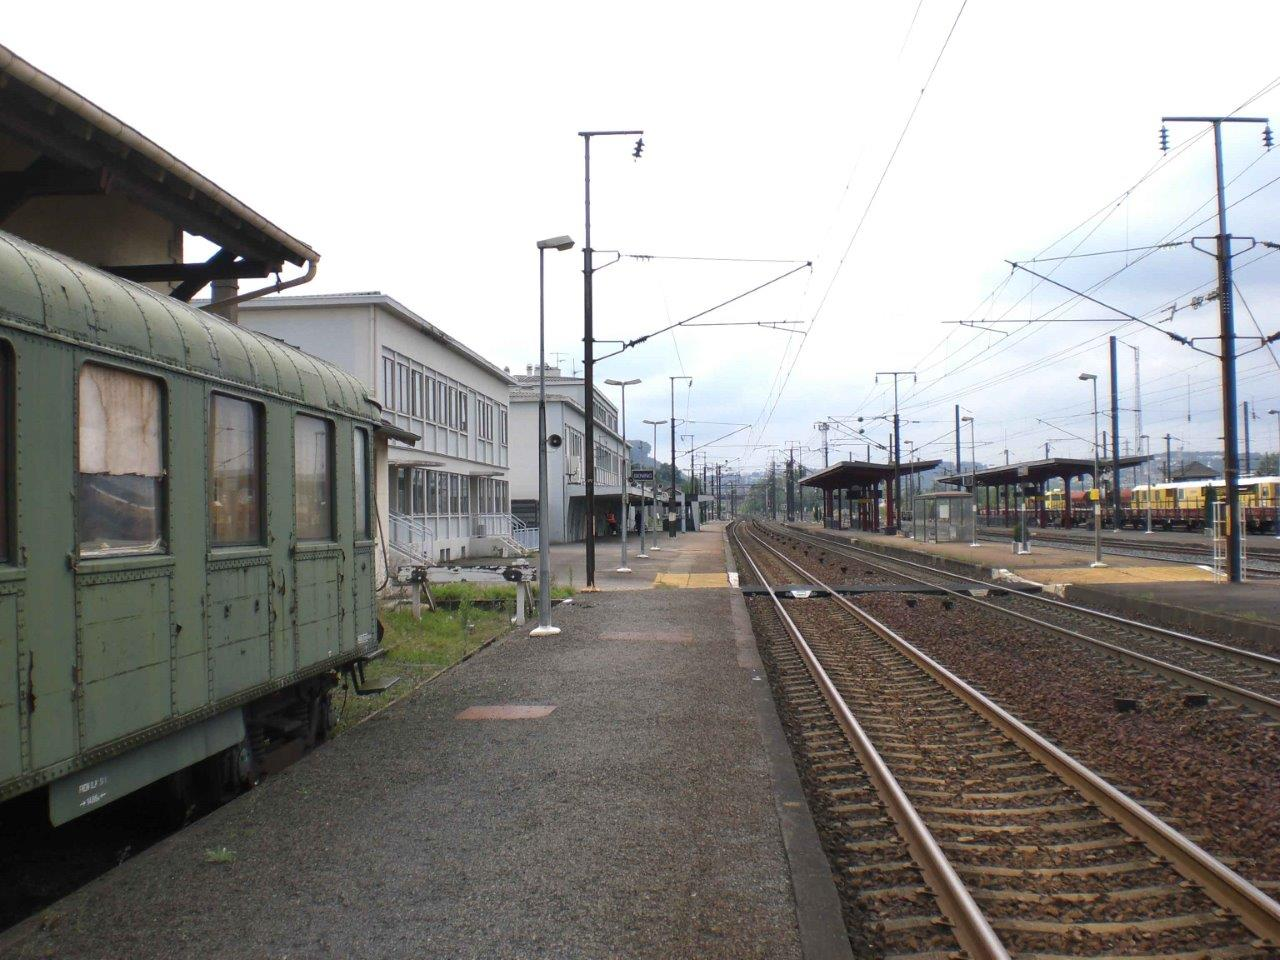 gare-de-bening-train-station